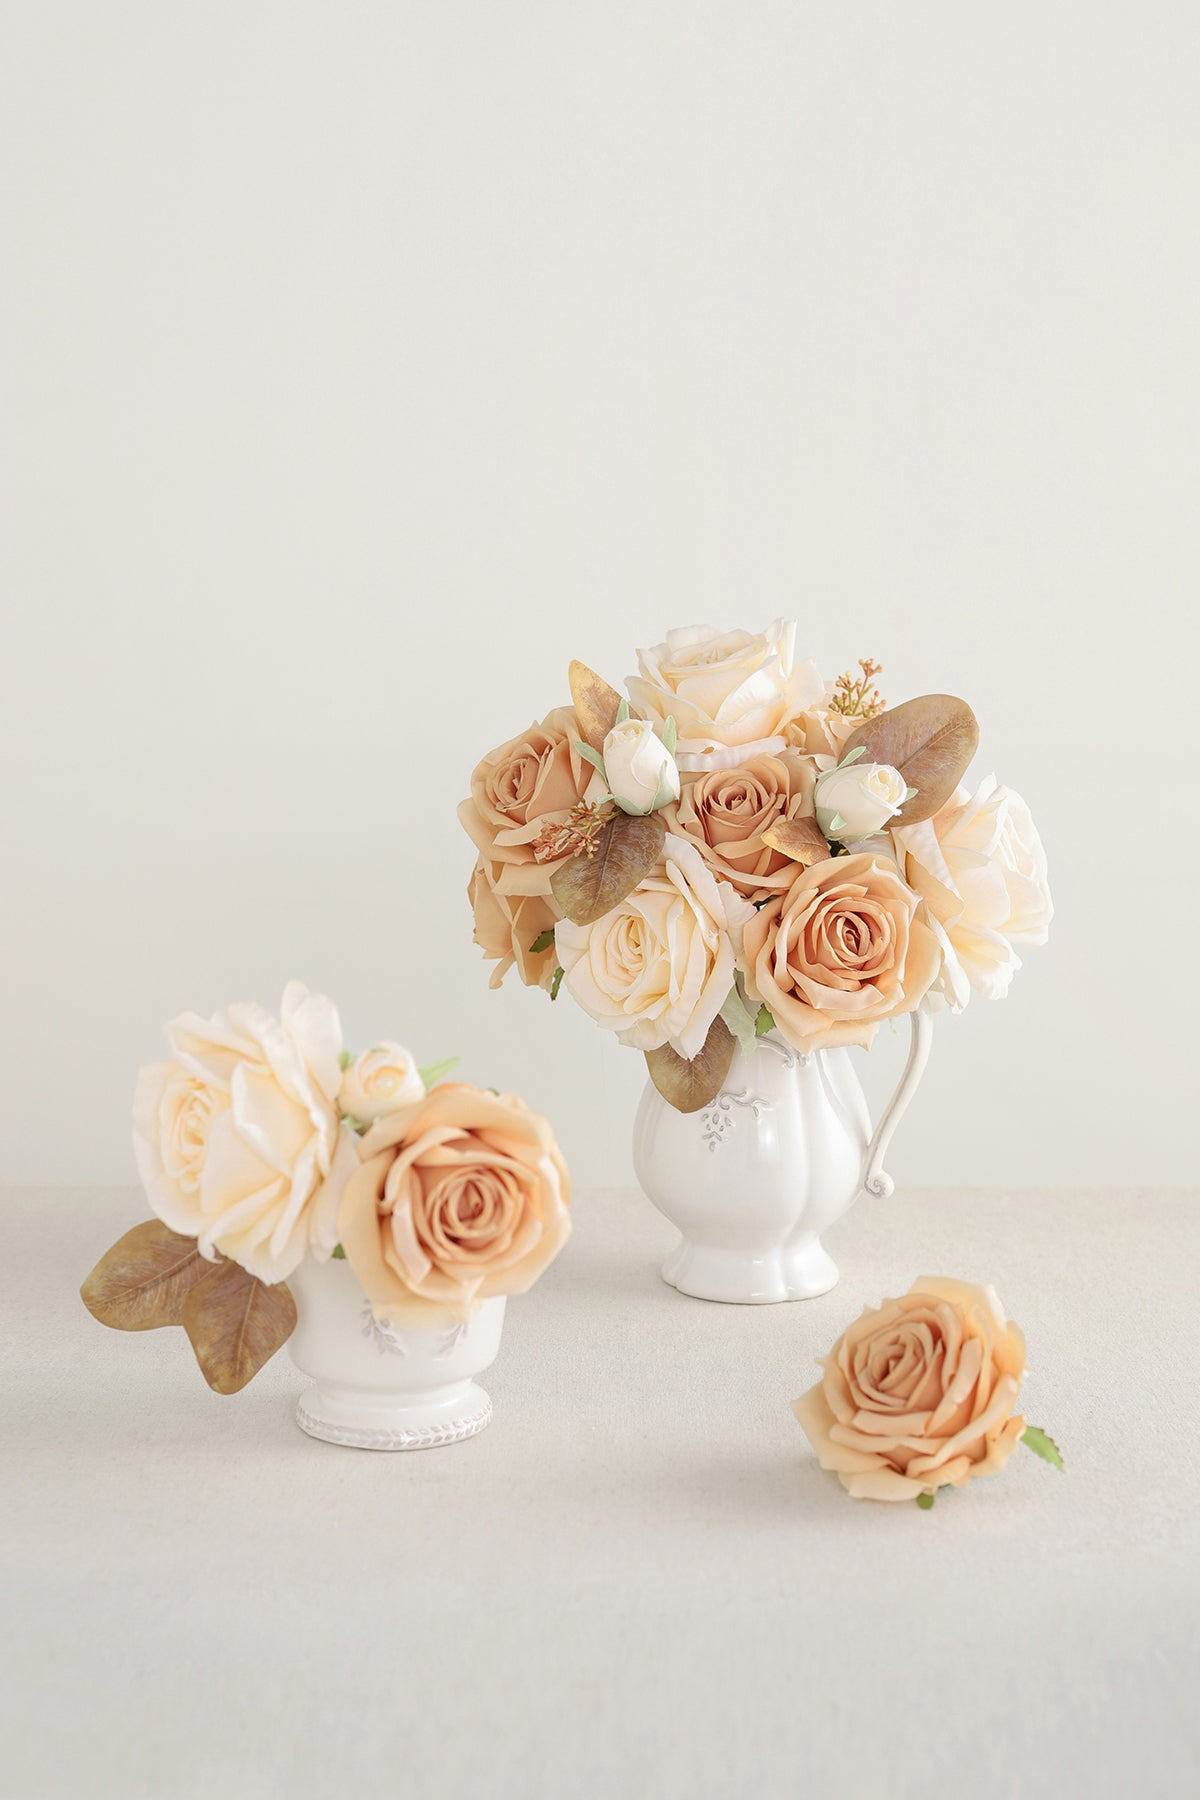 Silk Escimo Rose & Vendela Rose with Stem - Cream